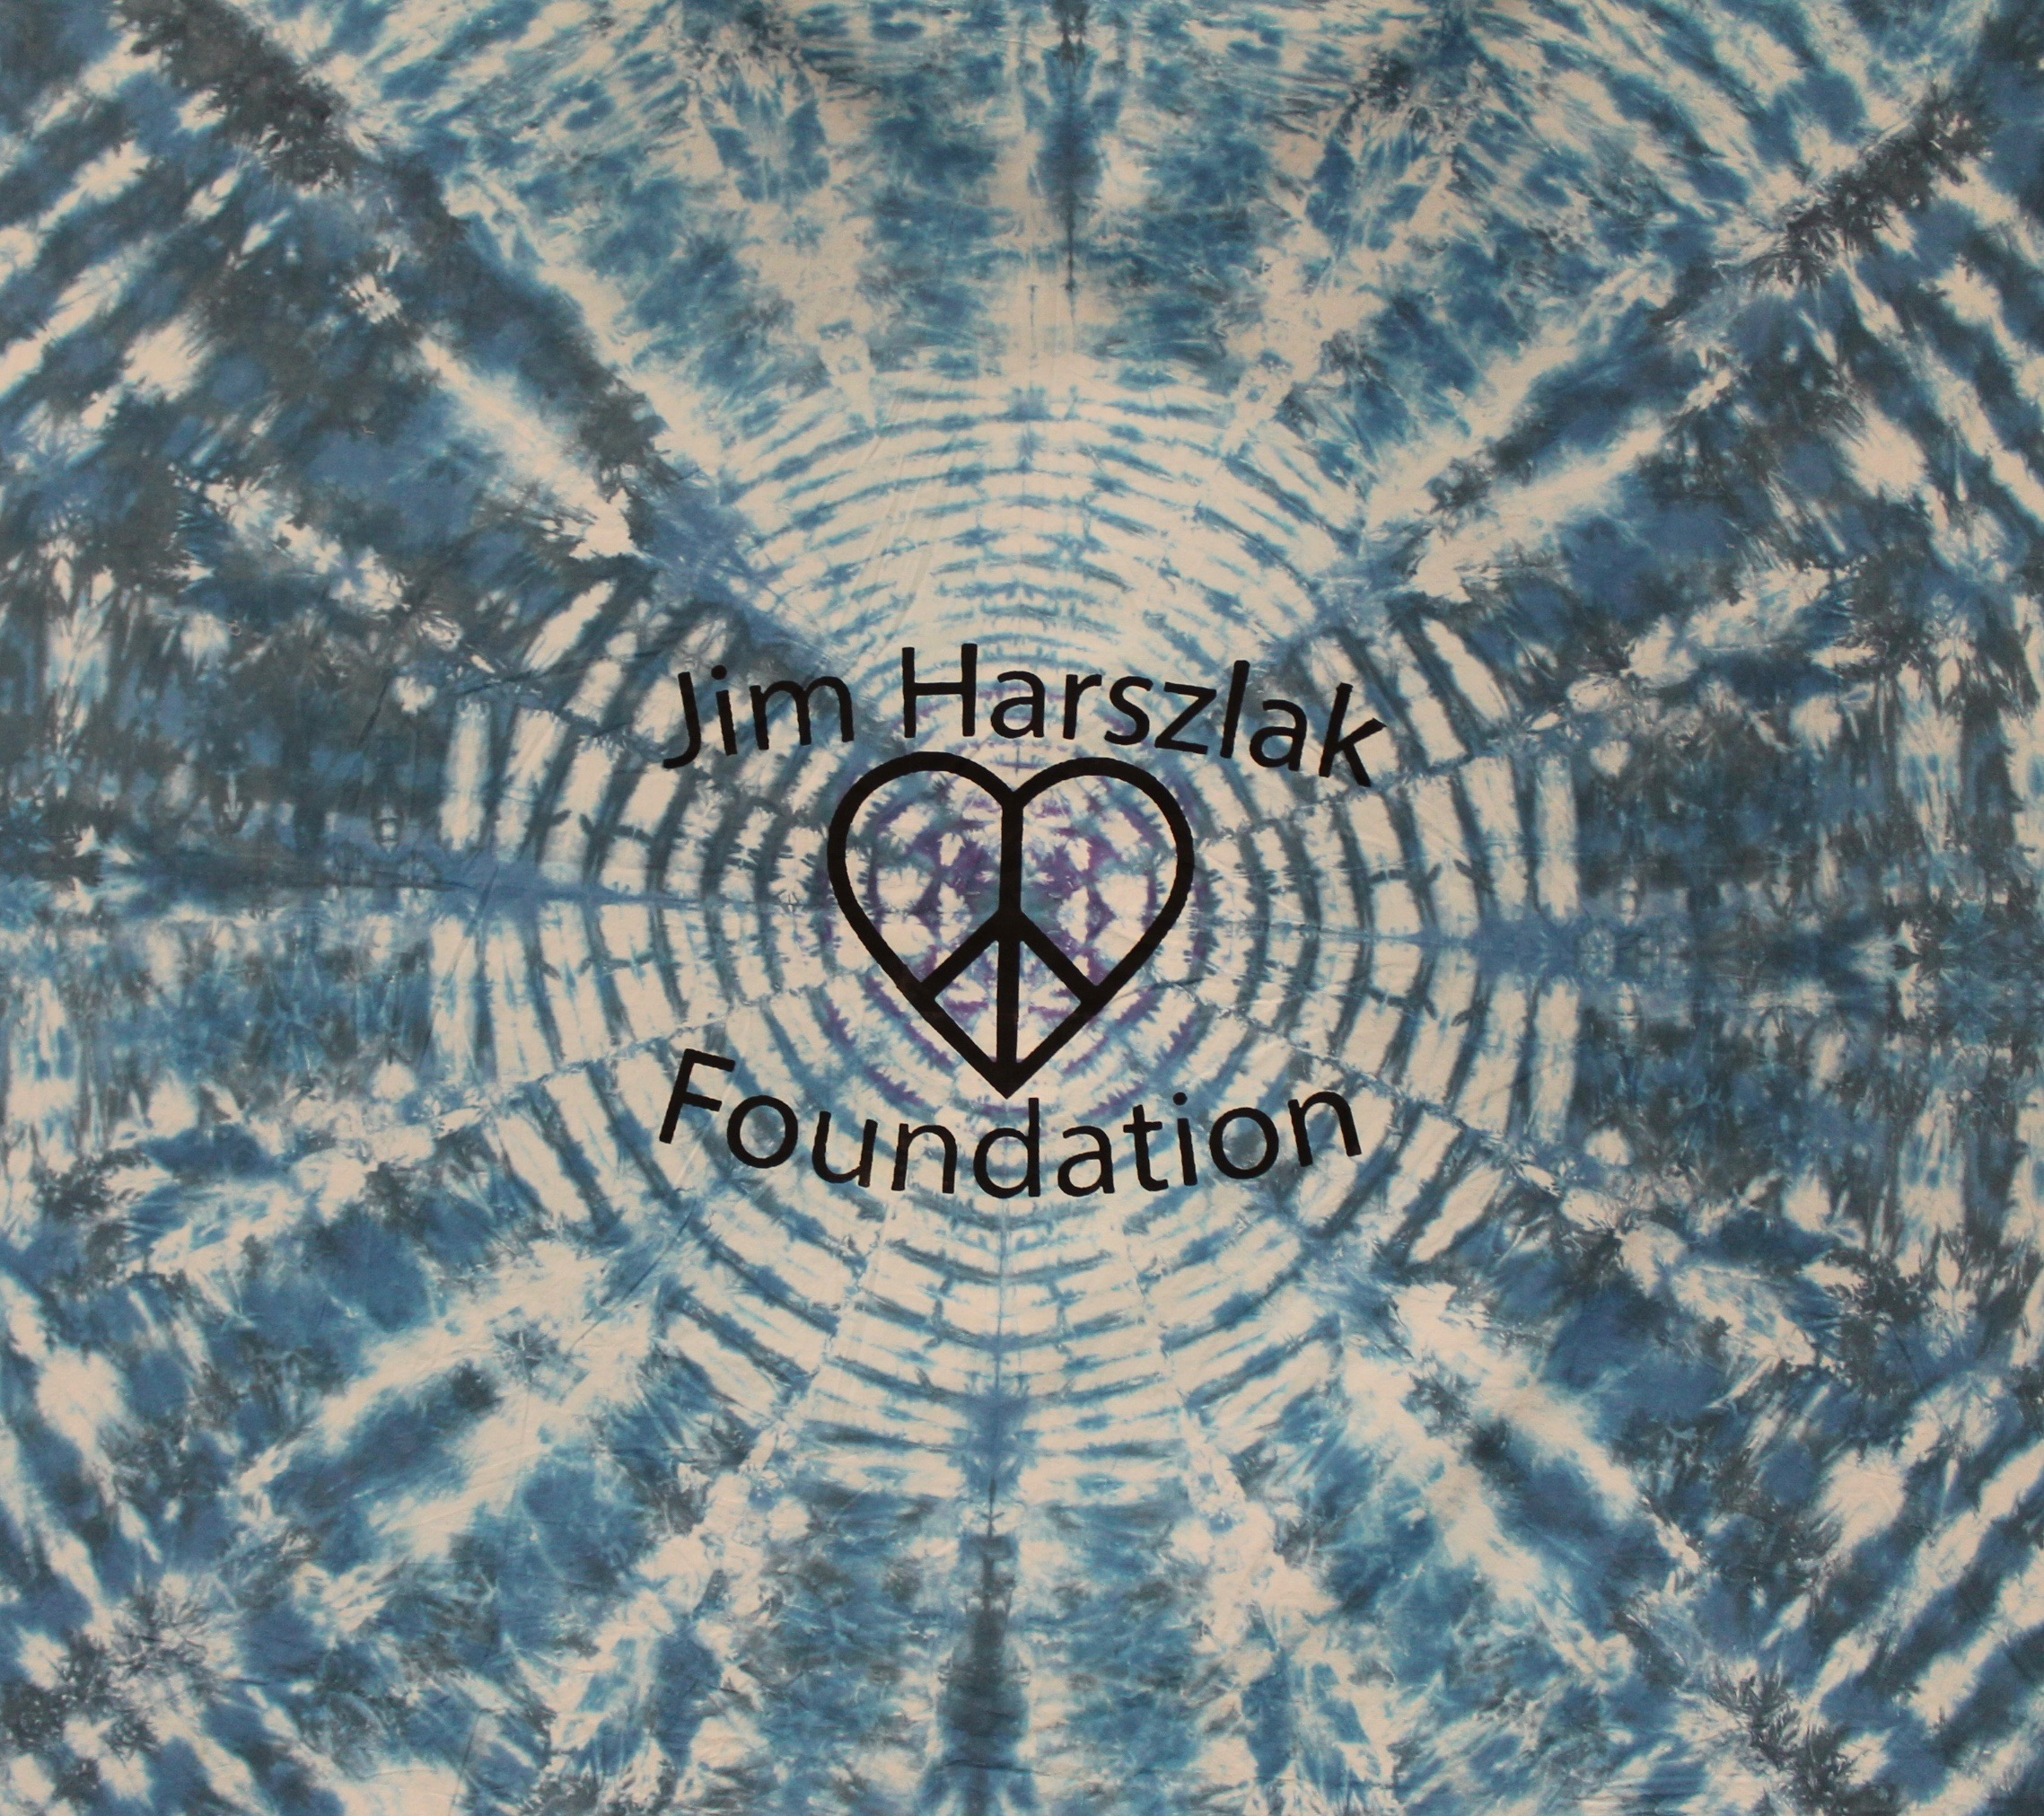 Jim Harszlak Foundation Inc was established on September 12, 2012. We are a Non Profit 501c3 New York State Charity.